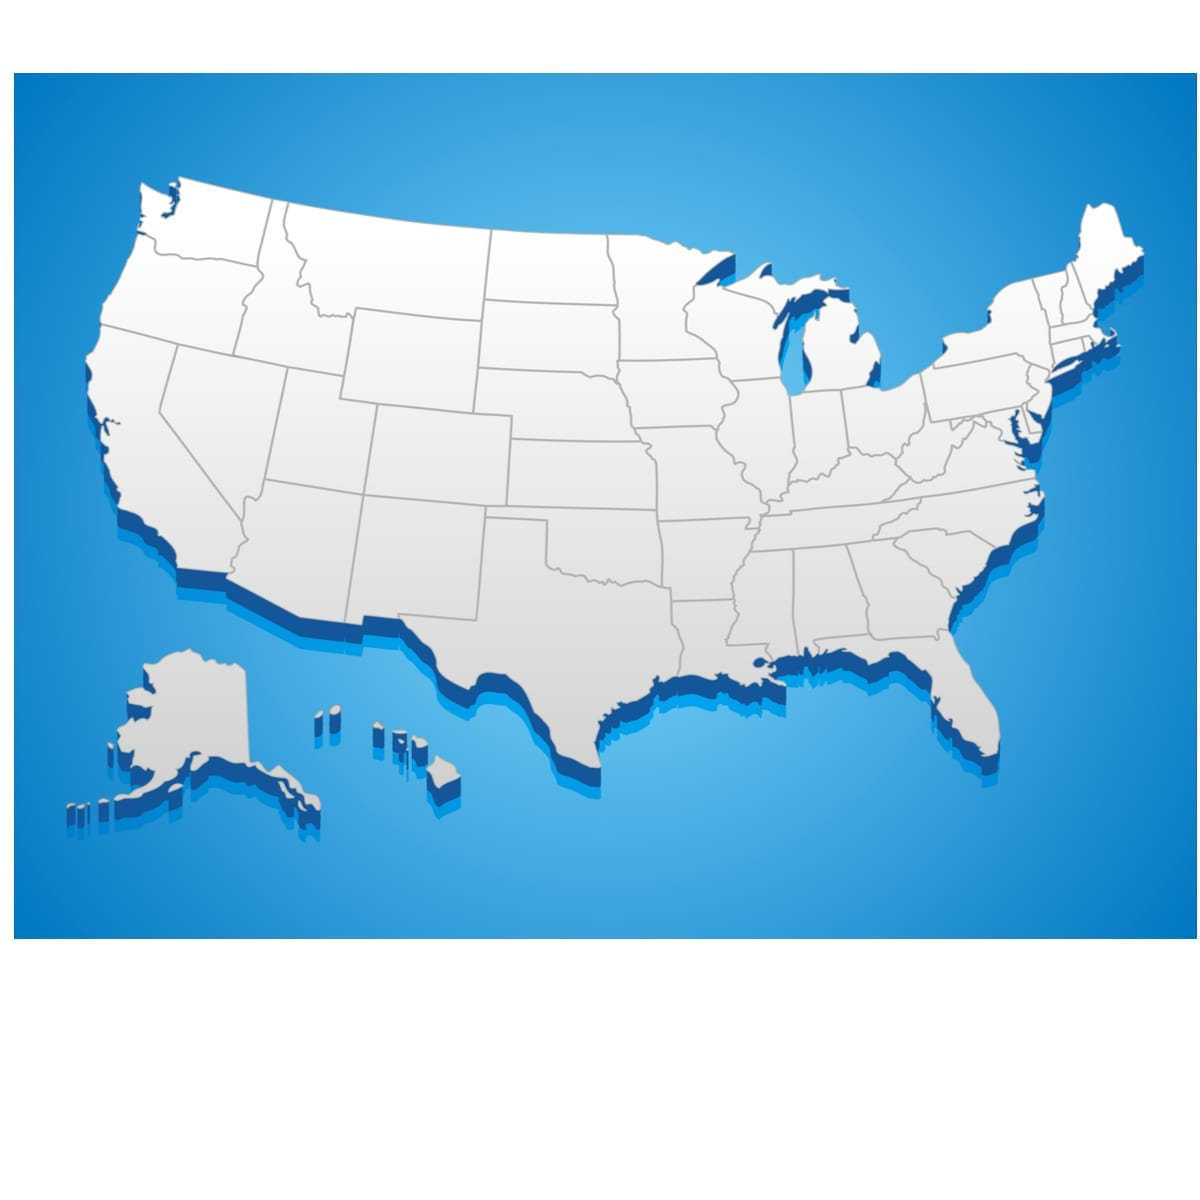 Family Trip To Usa In 2021 United States Map Usa Map United States Of America Free editable map of us